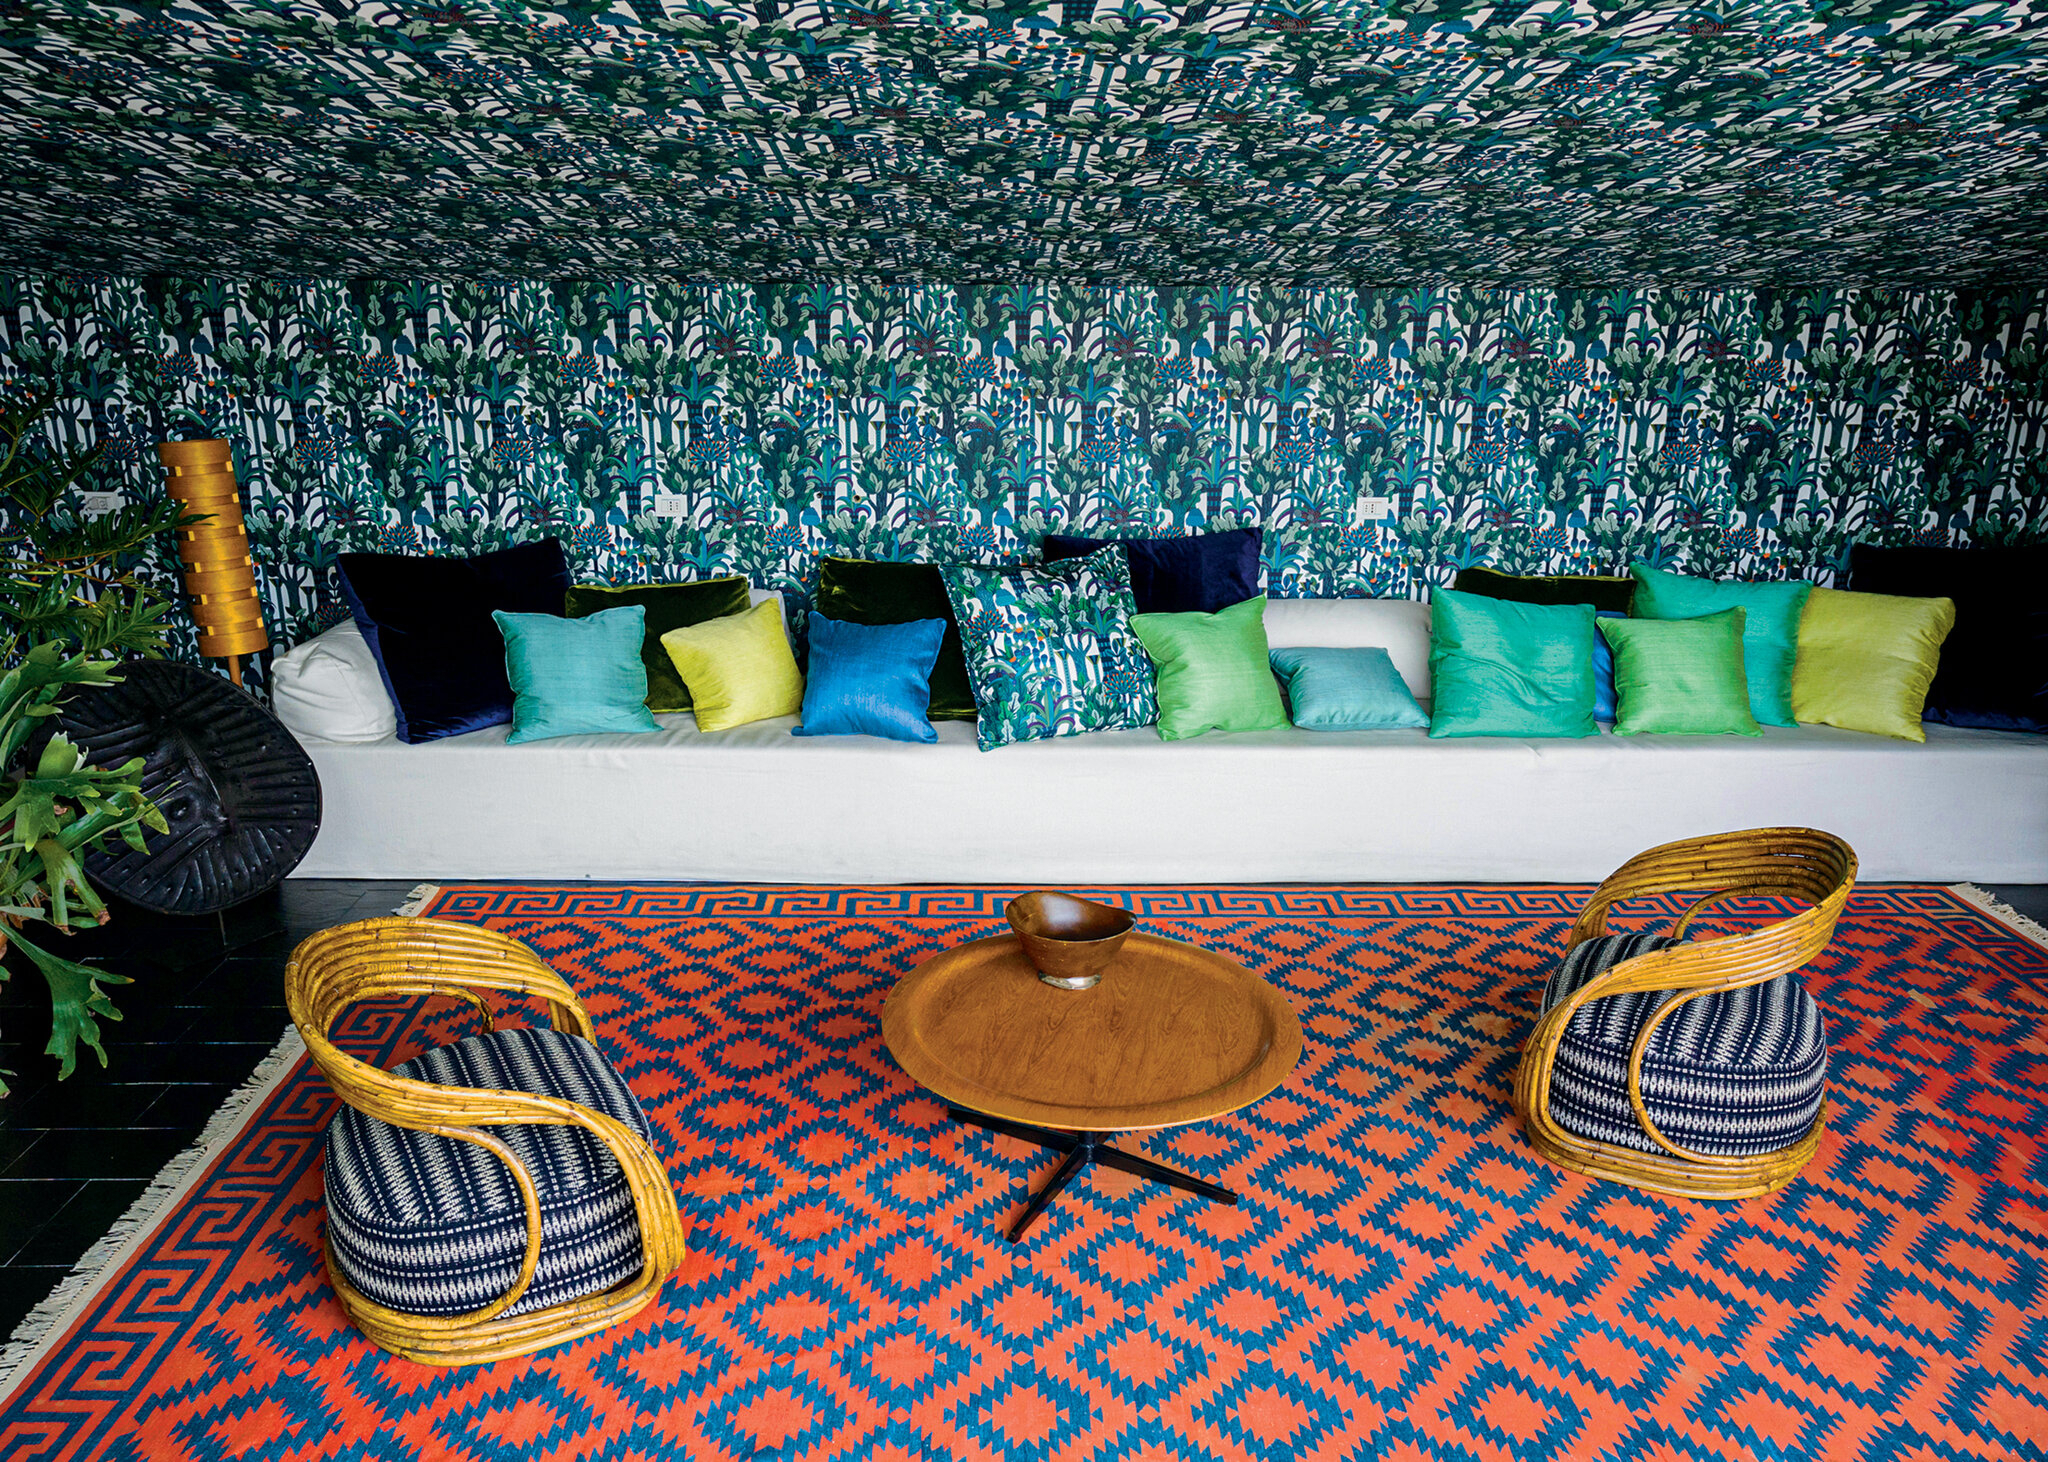 In Italy, A Fabric Designer's Wildly Colorful Home – The New With Regard To Most Recent Blended Fabric Italian Wall Hangings (View 16 of 20)